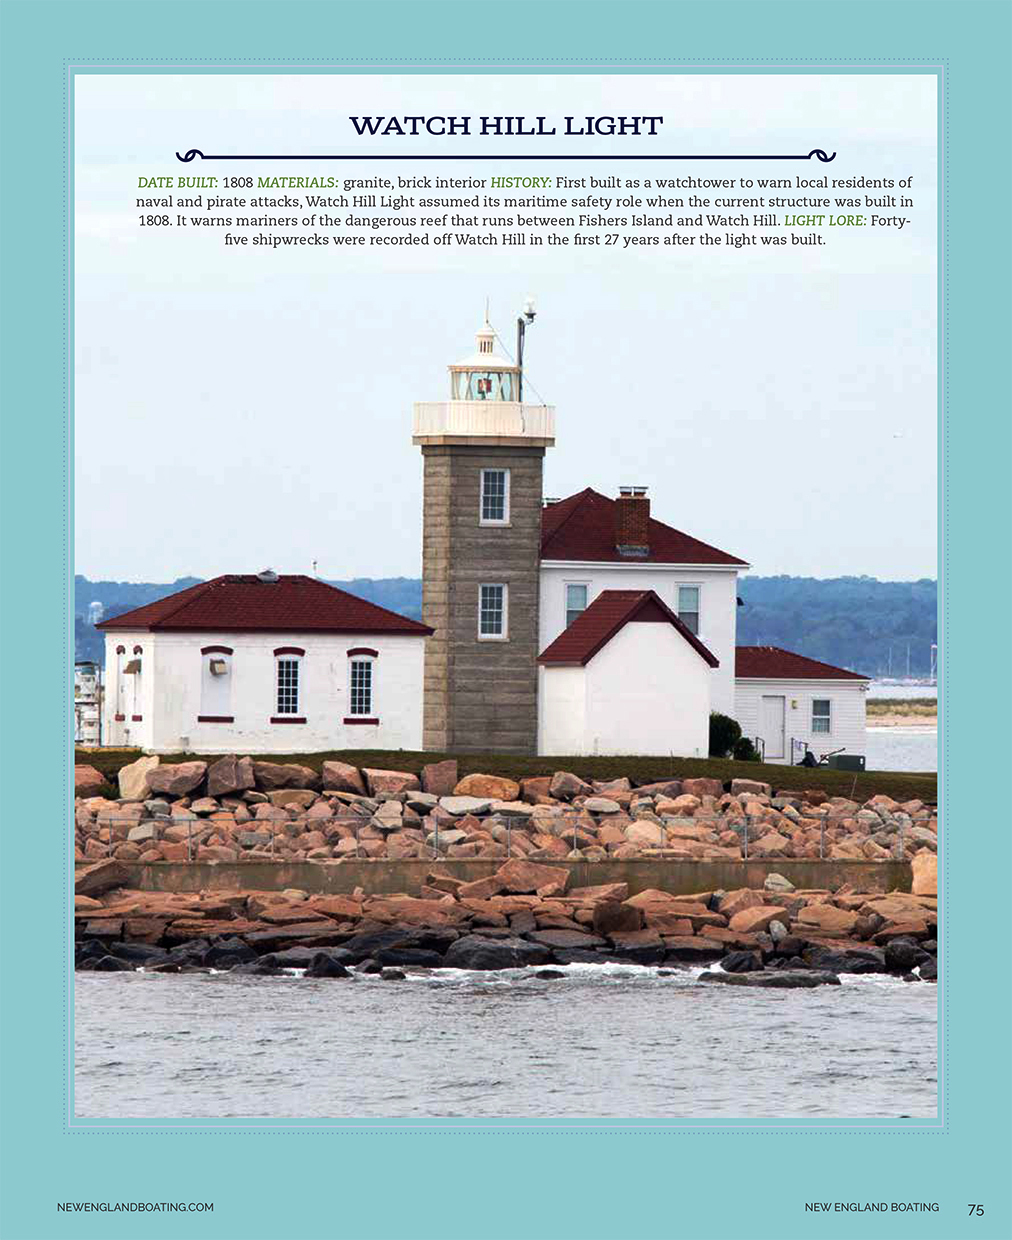 Watch-Hill-Light-New-England-Boating-Caryn-B-Davis